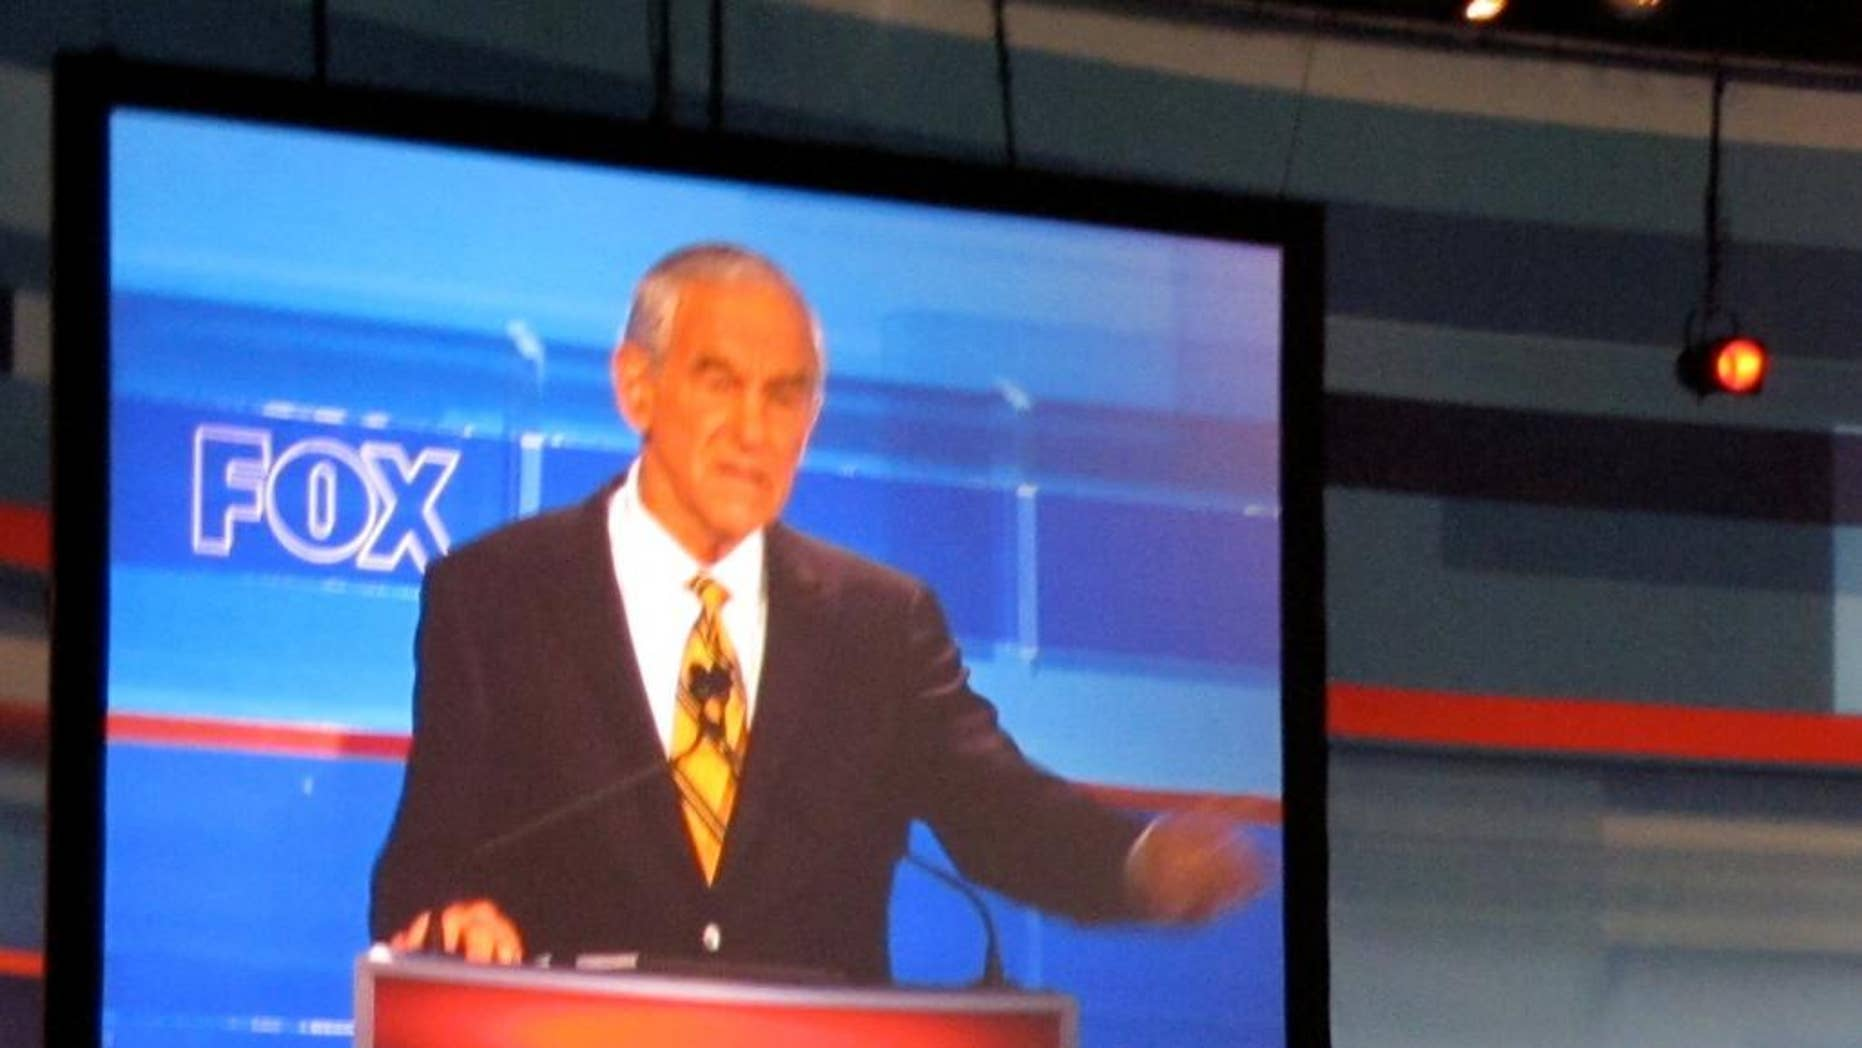 Texas Rep. Ron Paul gestures during a FOX News/South Carolina GOP debate Thursday, May 5 in Greenville. (Fox News Photo)